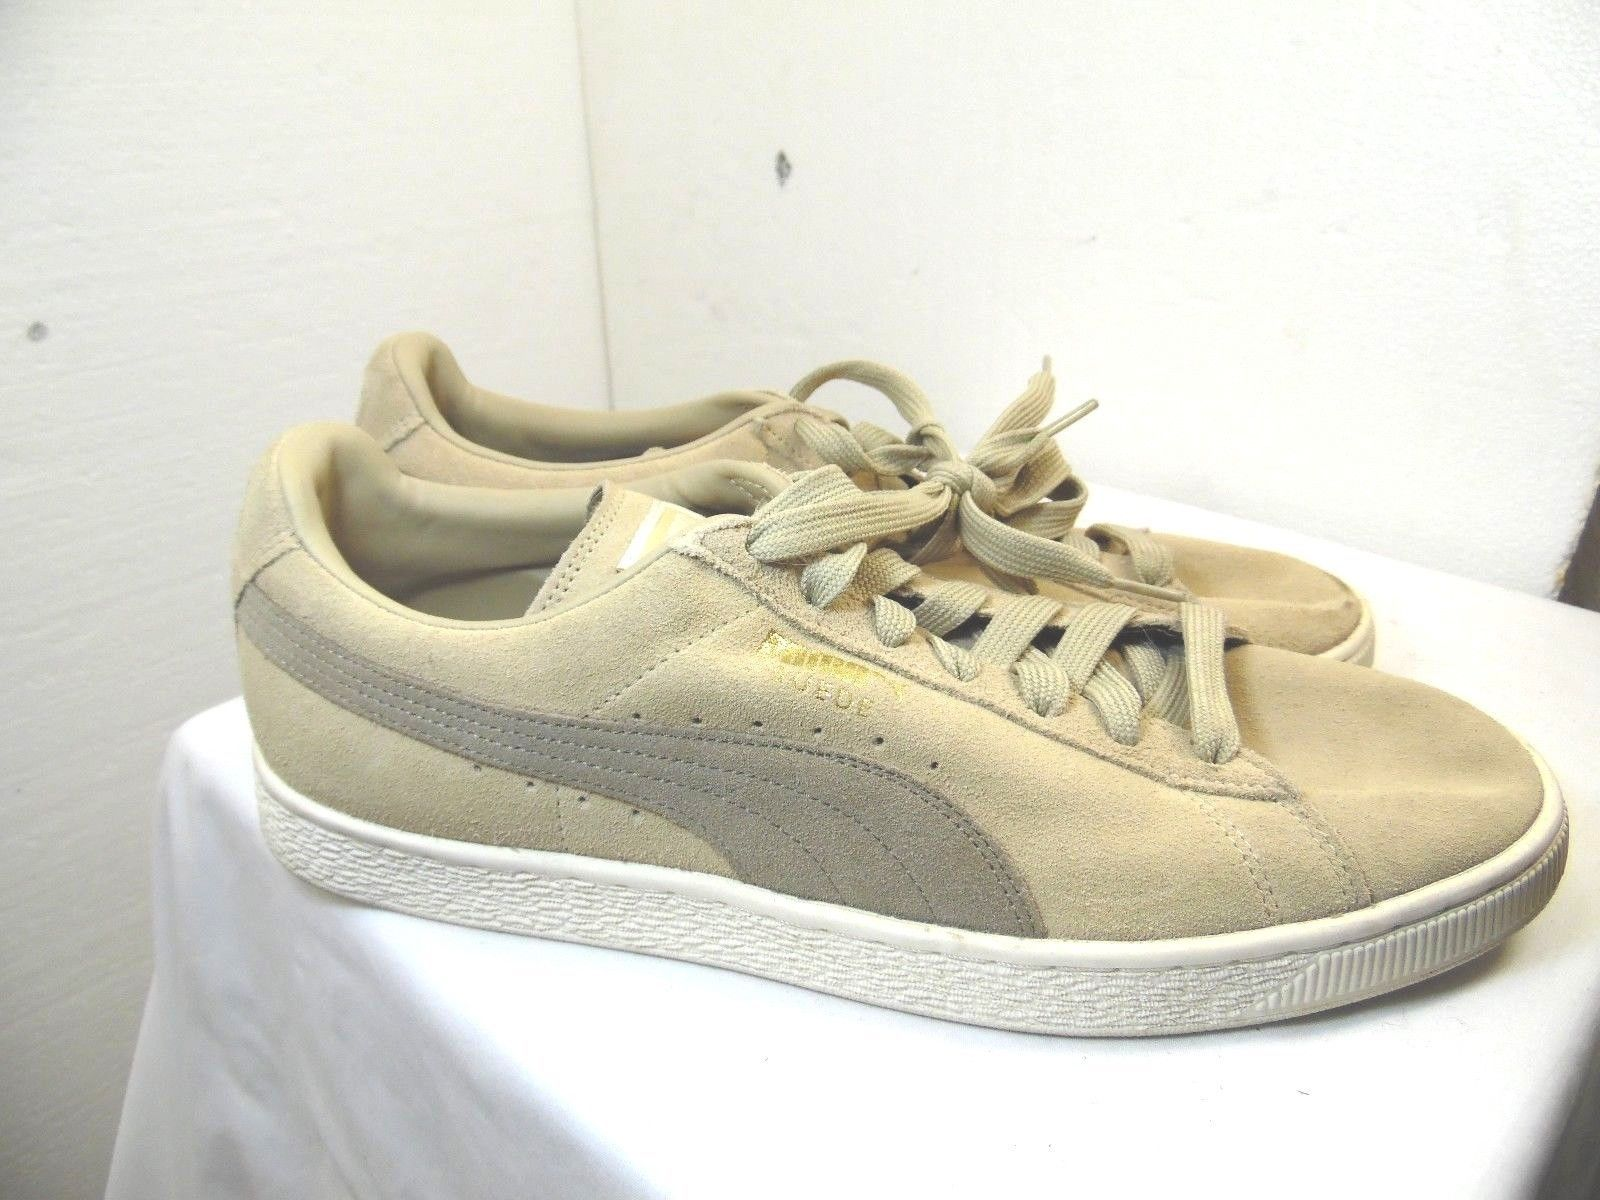 4623a978218 Mens Athletic Shoes Puma Brand Size 12 Tan and 50 similar items